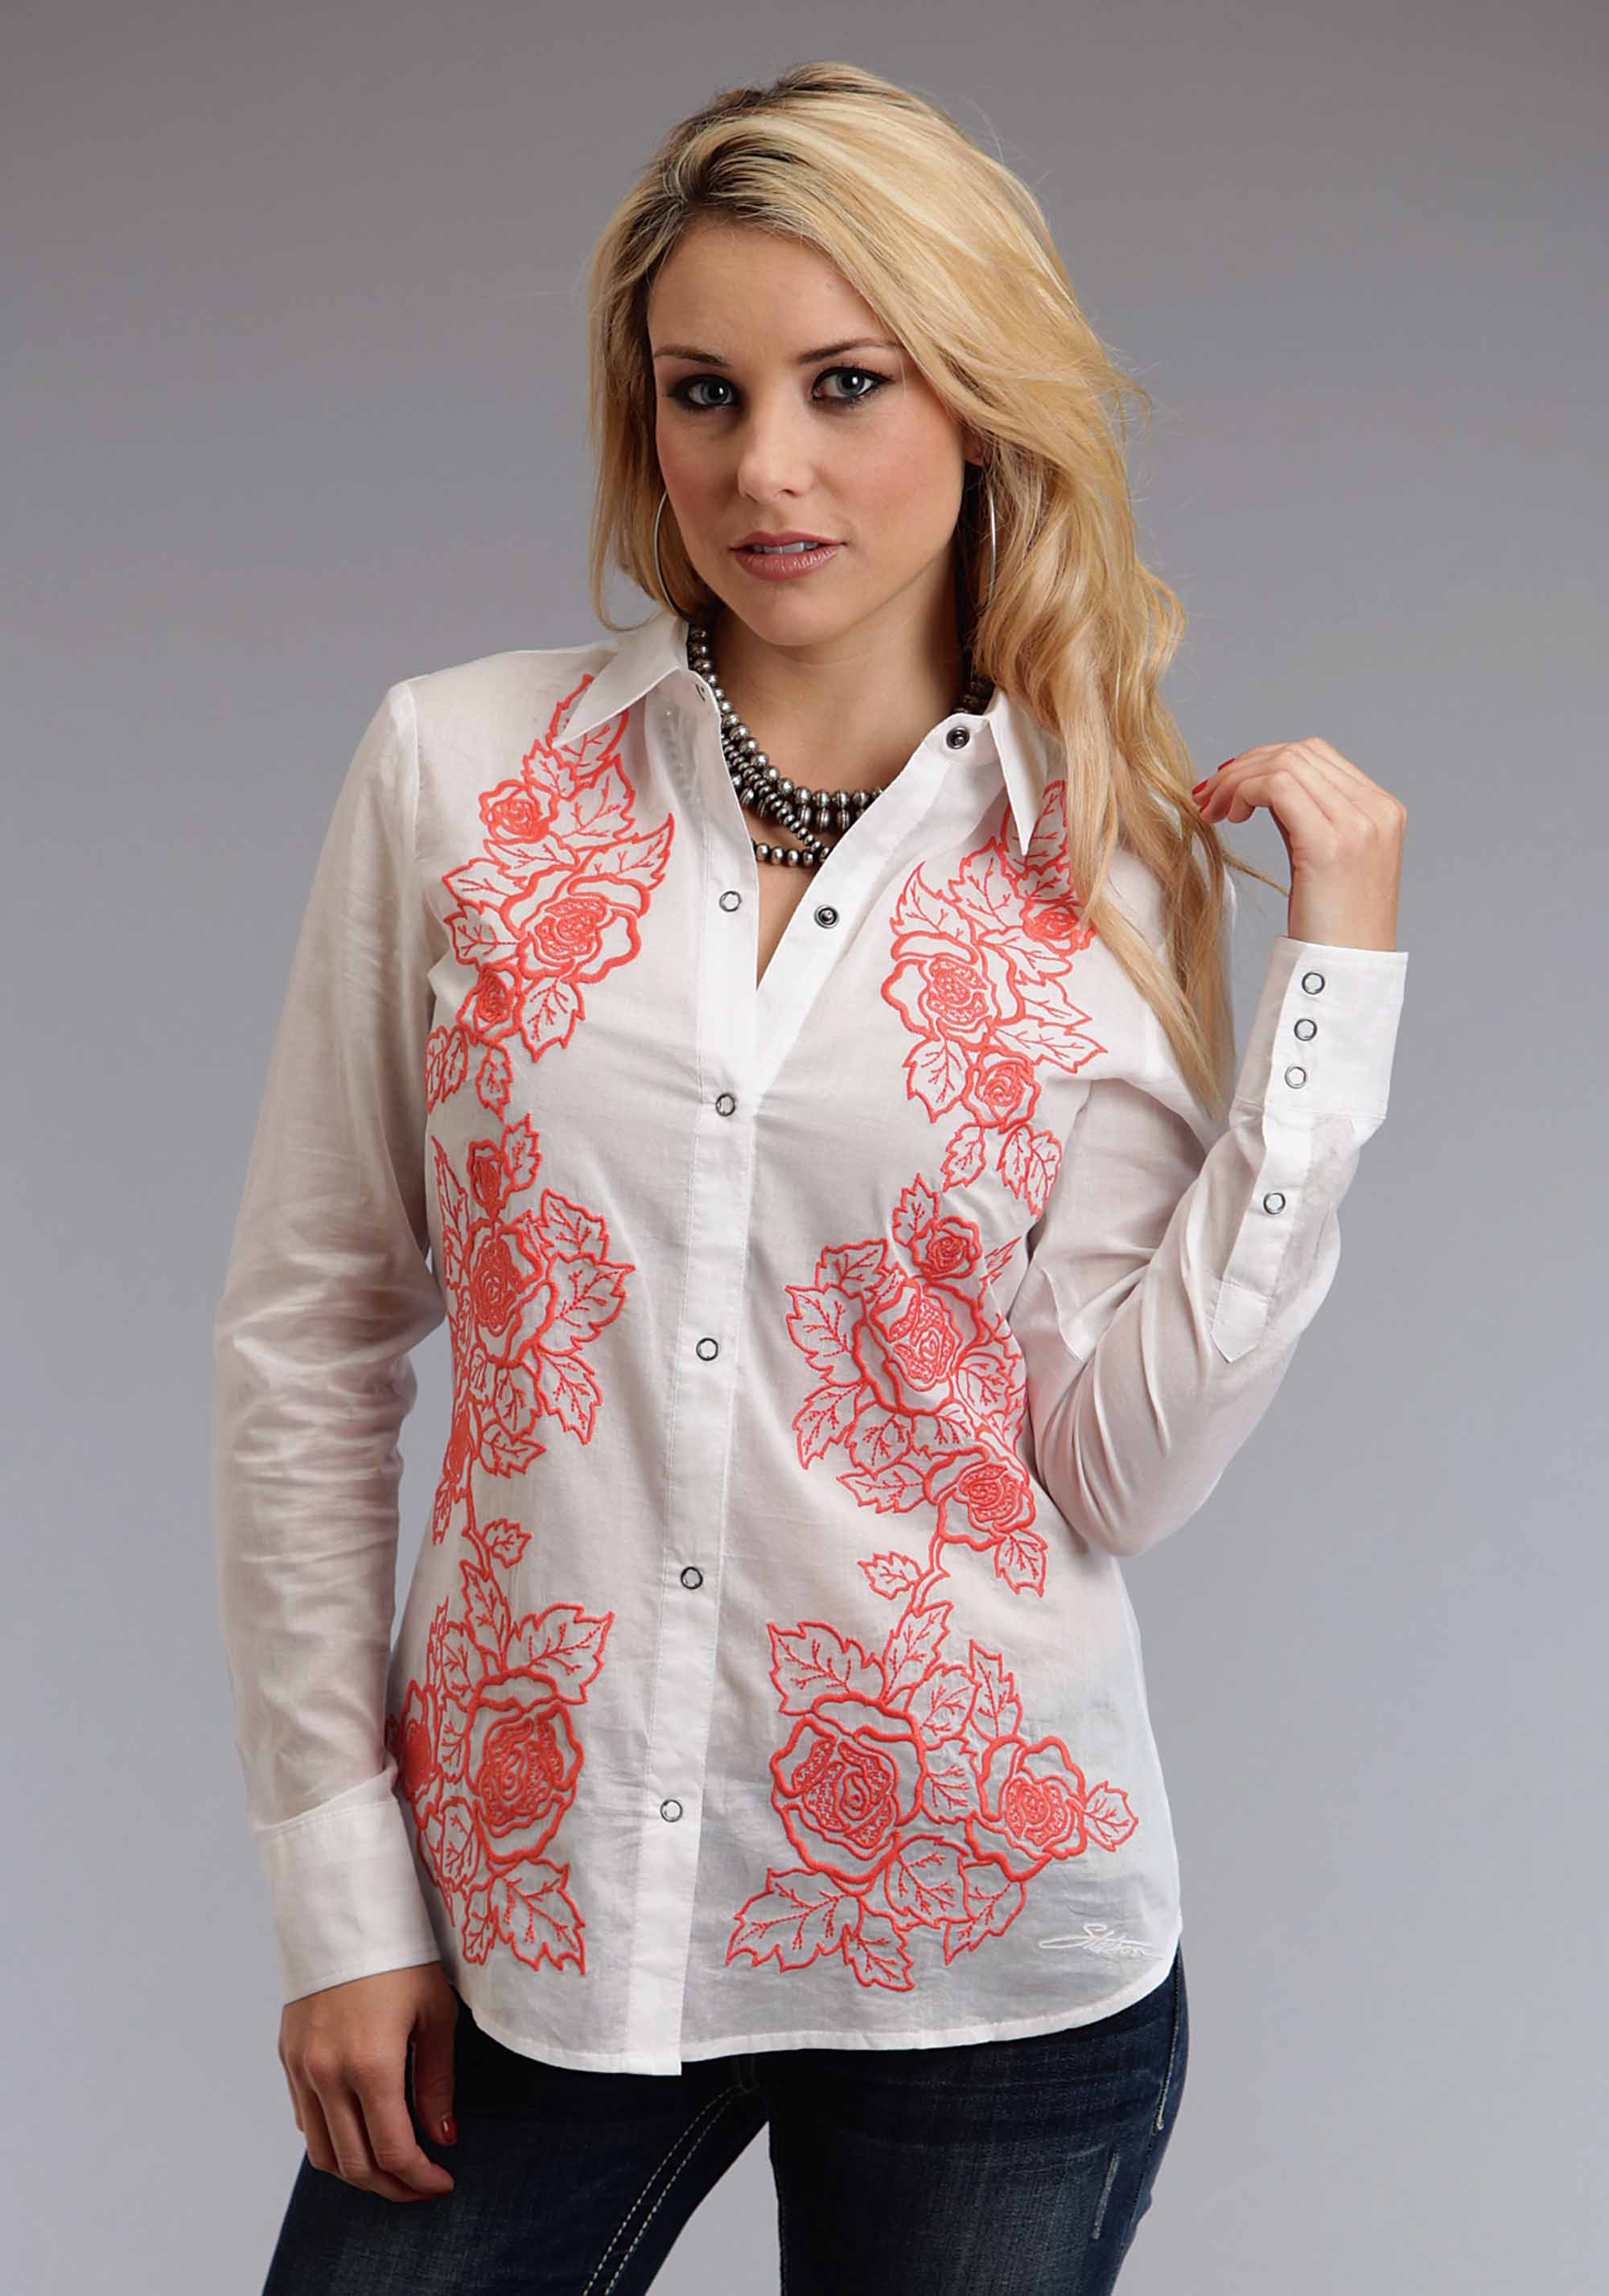 Stetson Womens Embroidered Western Shirt - Coral Bloom